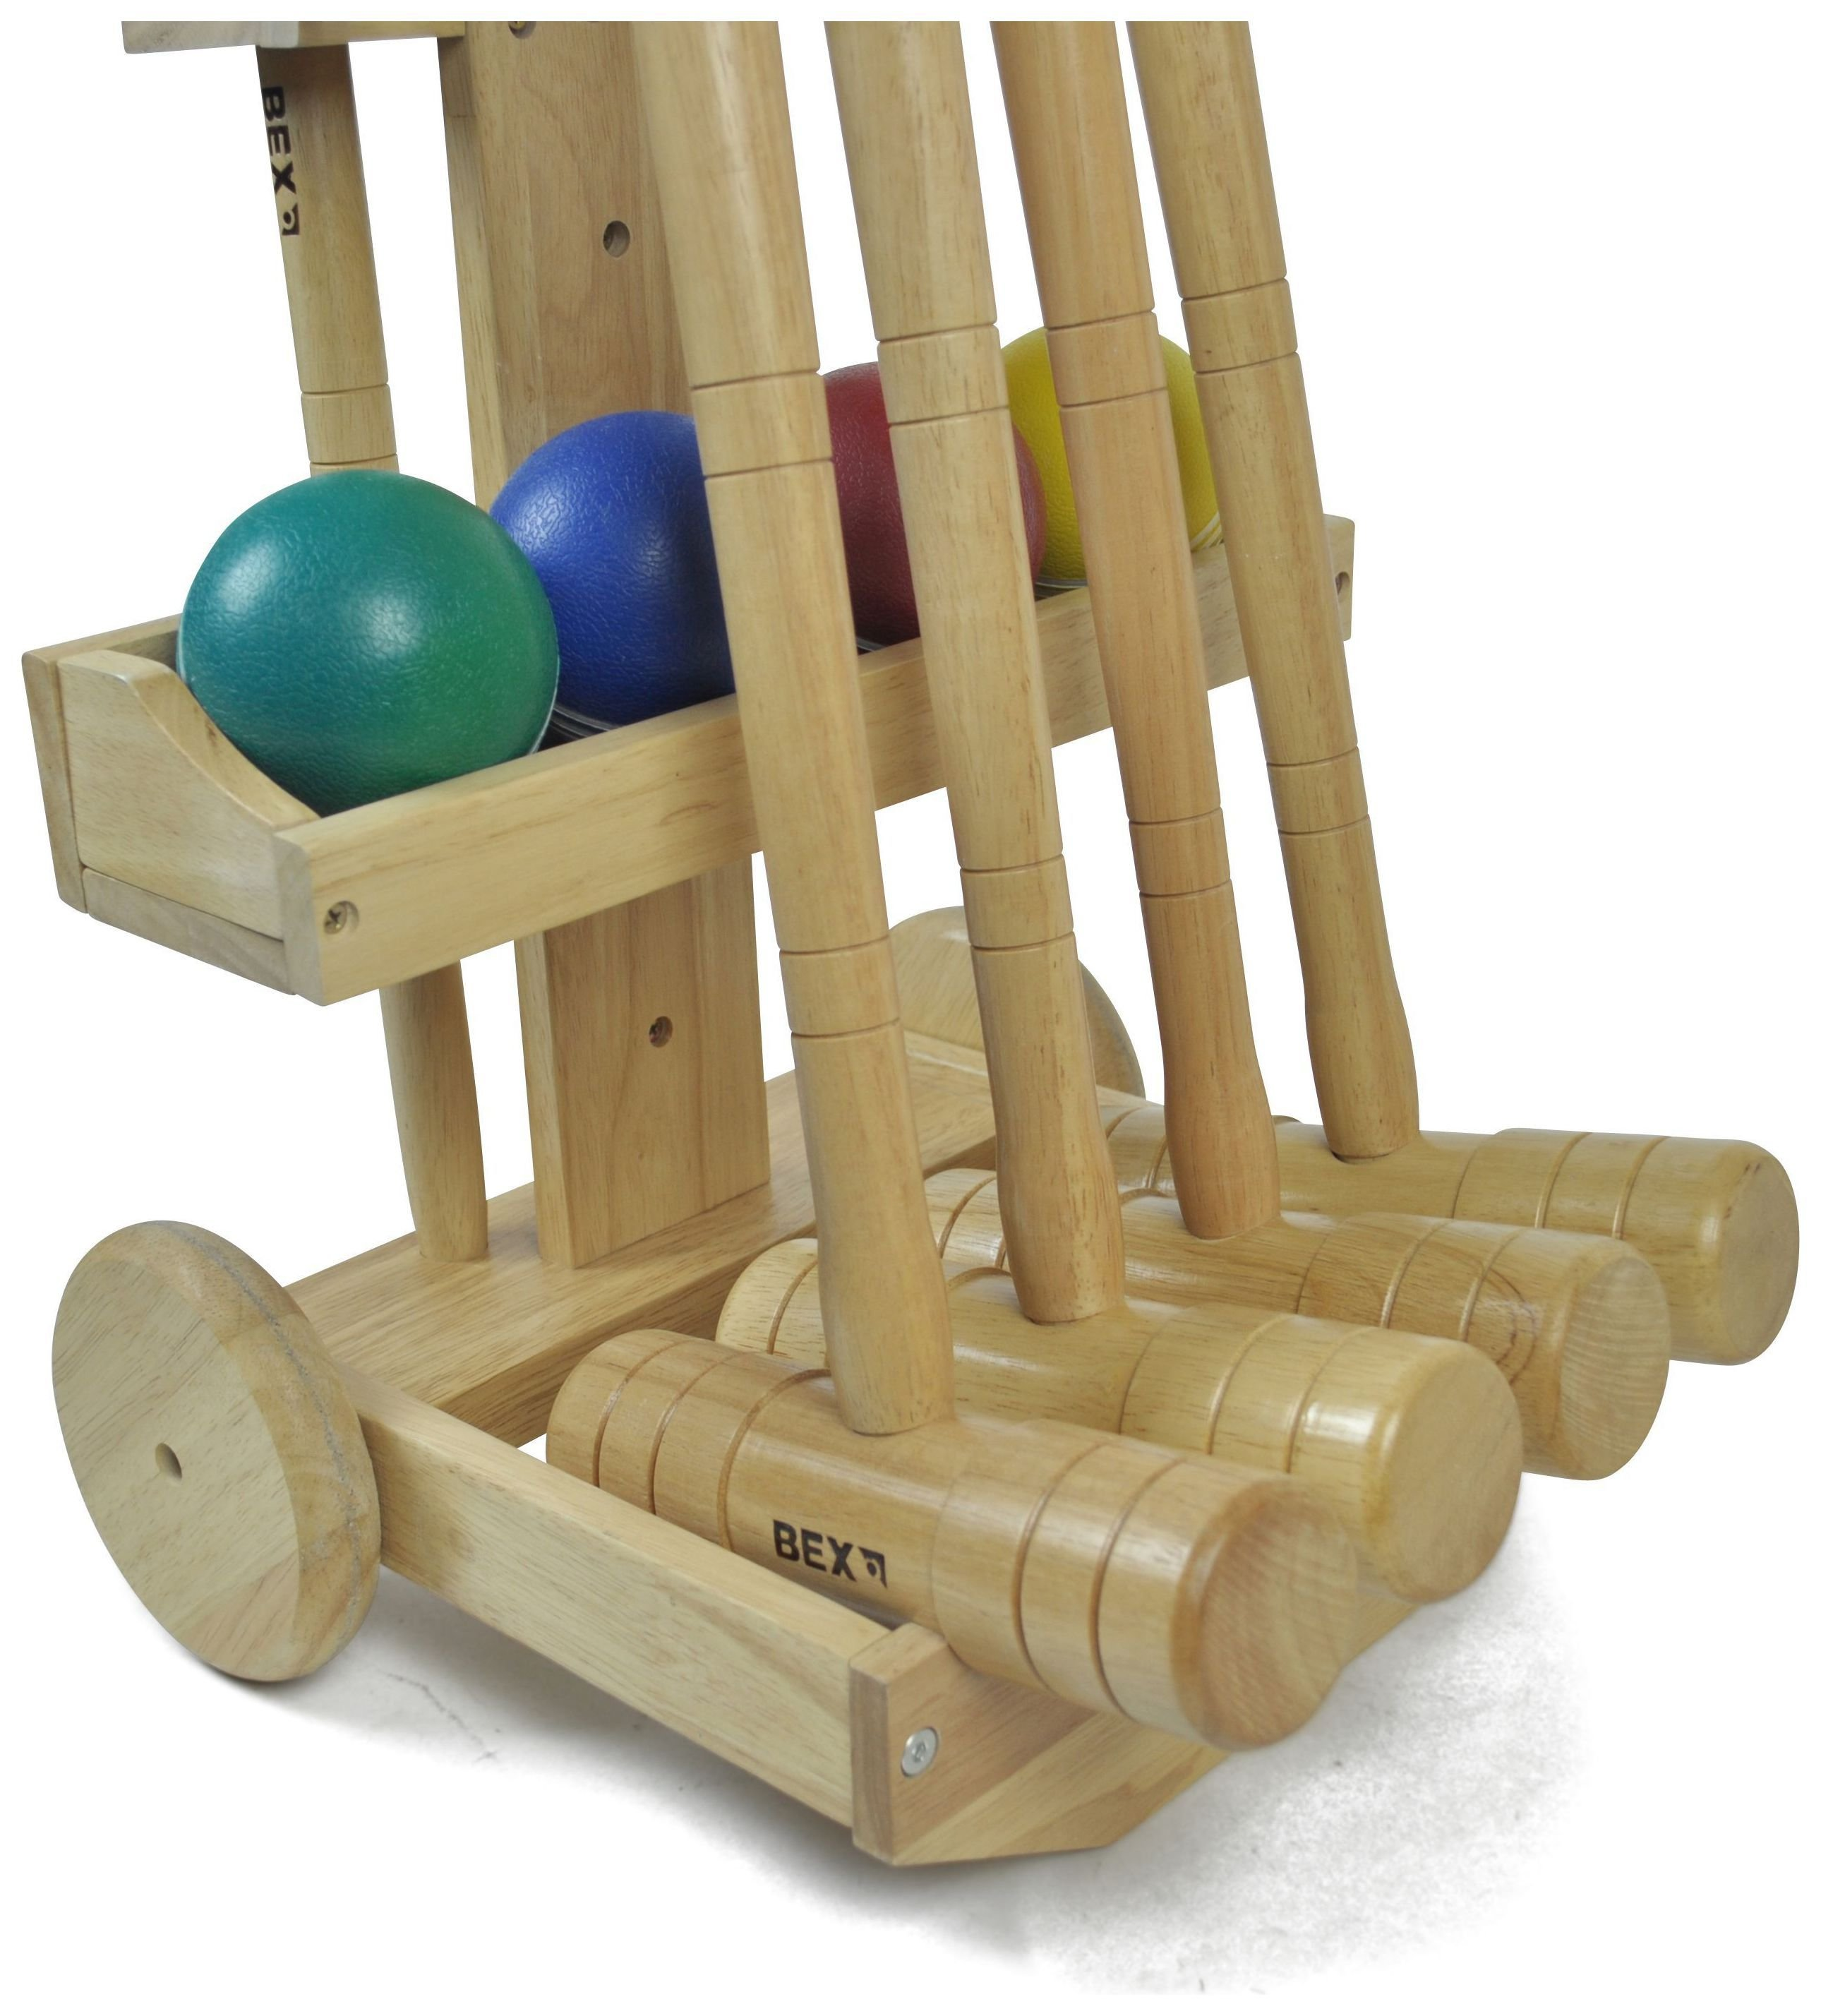 Image of Croquet Pro 4 Mallet With Trolley.